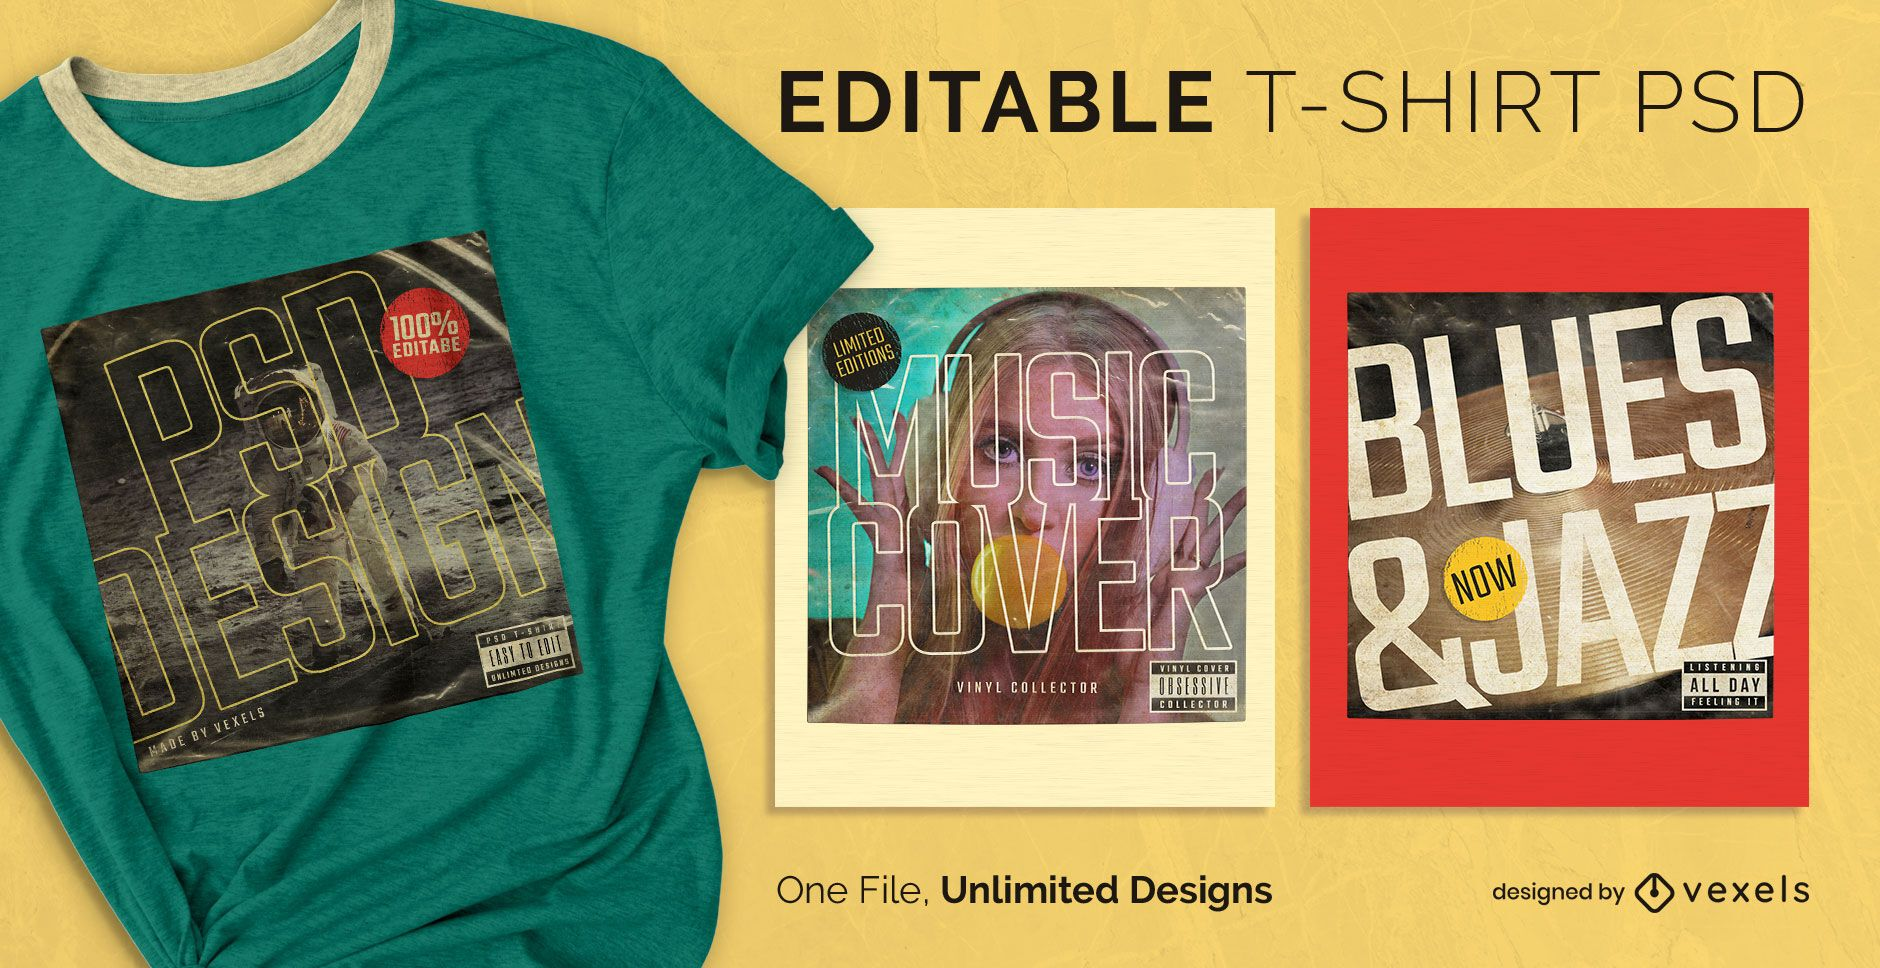 Vinyl cover scalable t-shirt psd